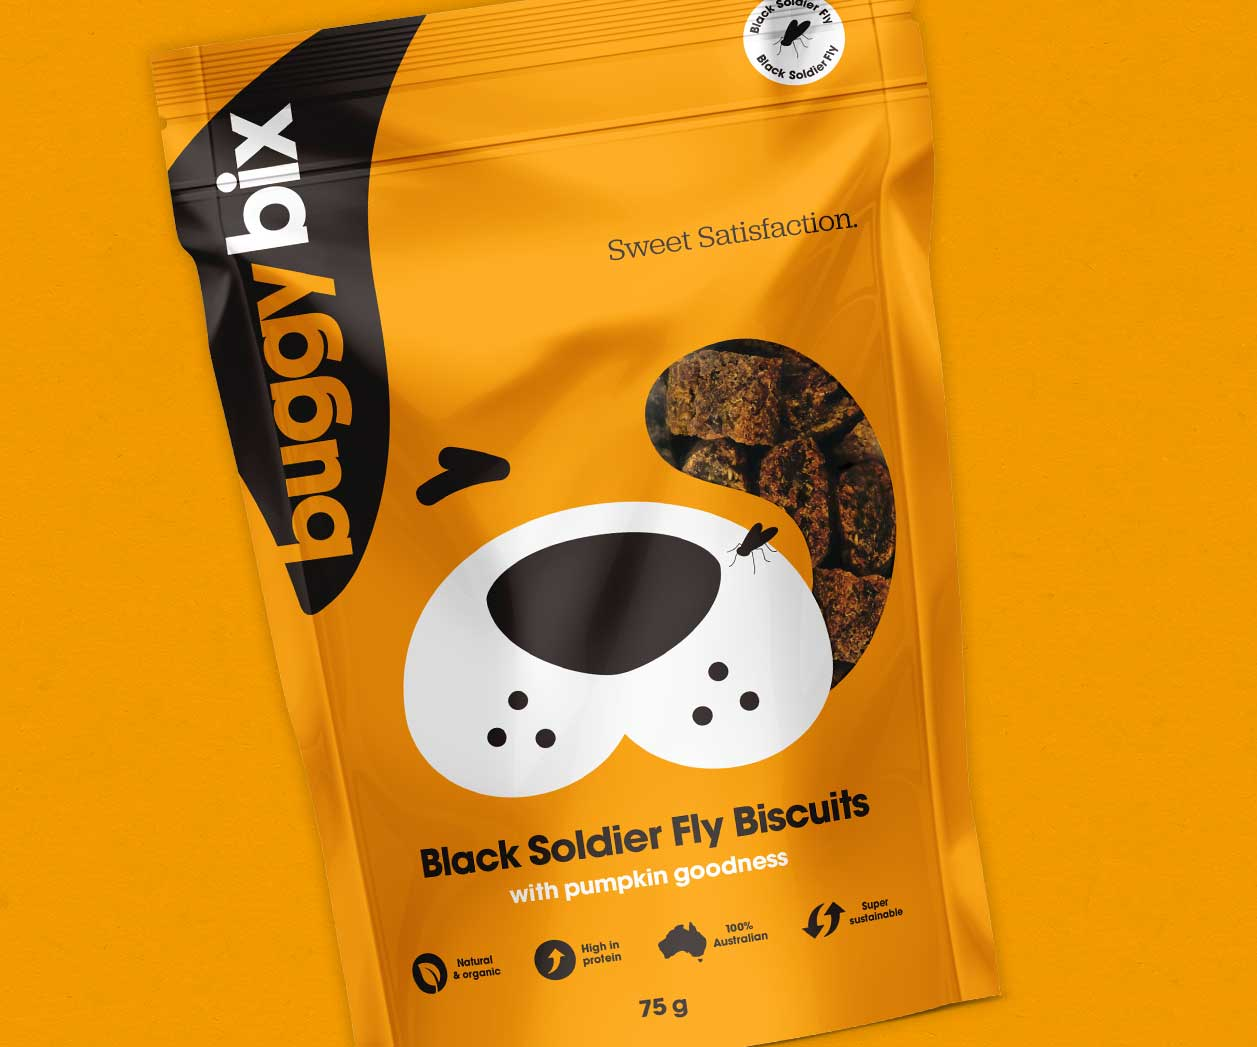 Creative Packaging Design project for petcare products brand Buggy Bix, Sydney, Australia cover image